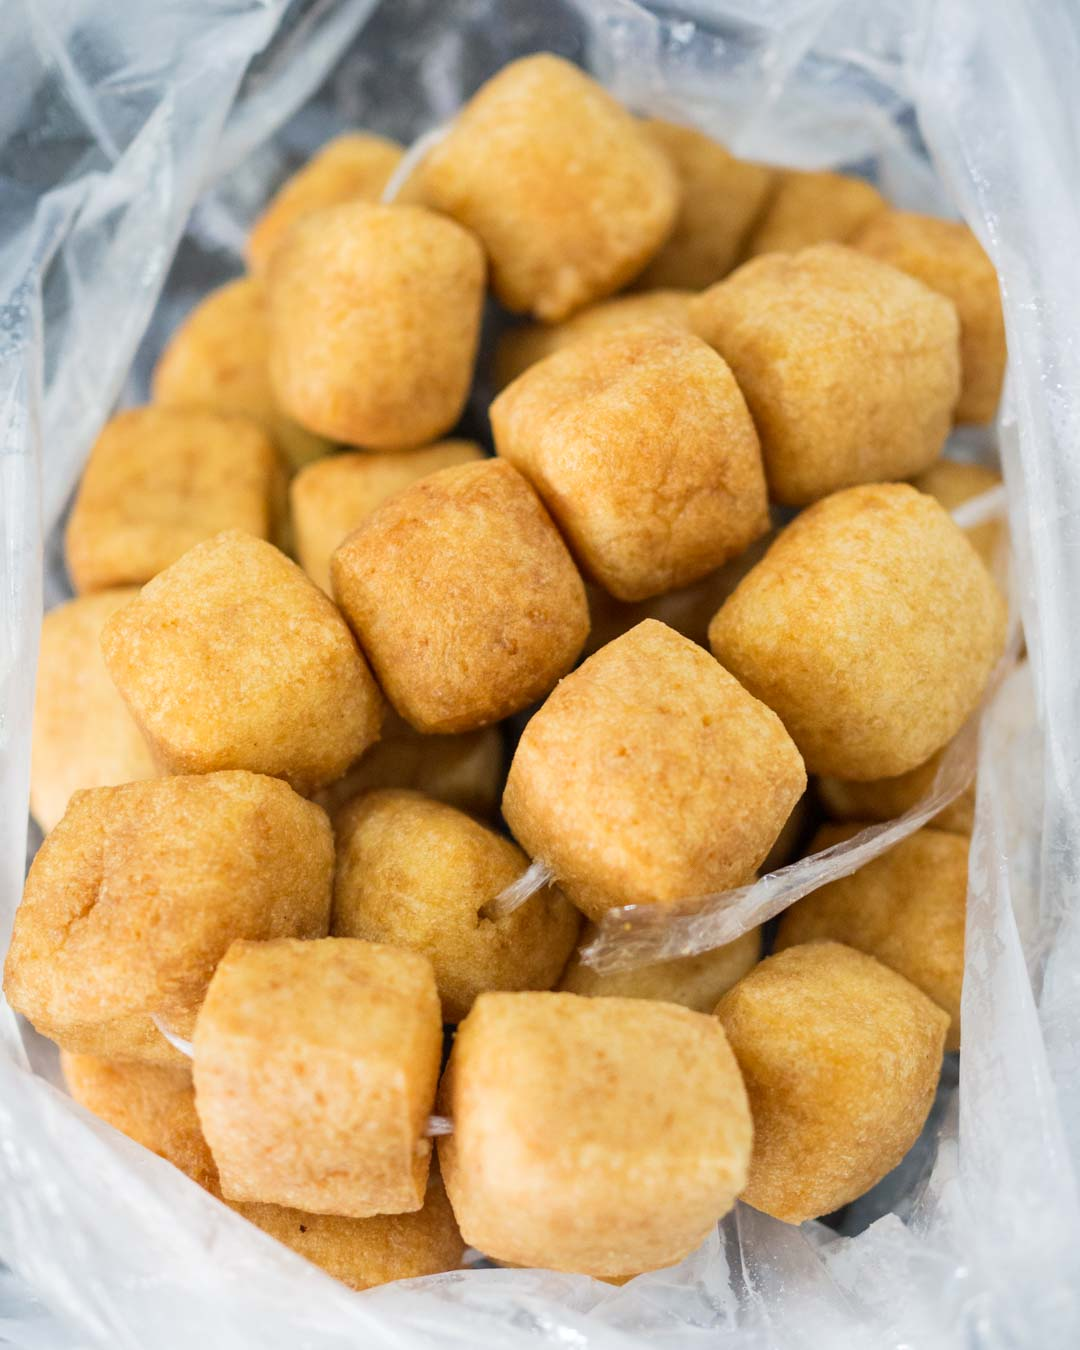 fried tofu in a bag